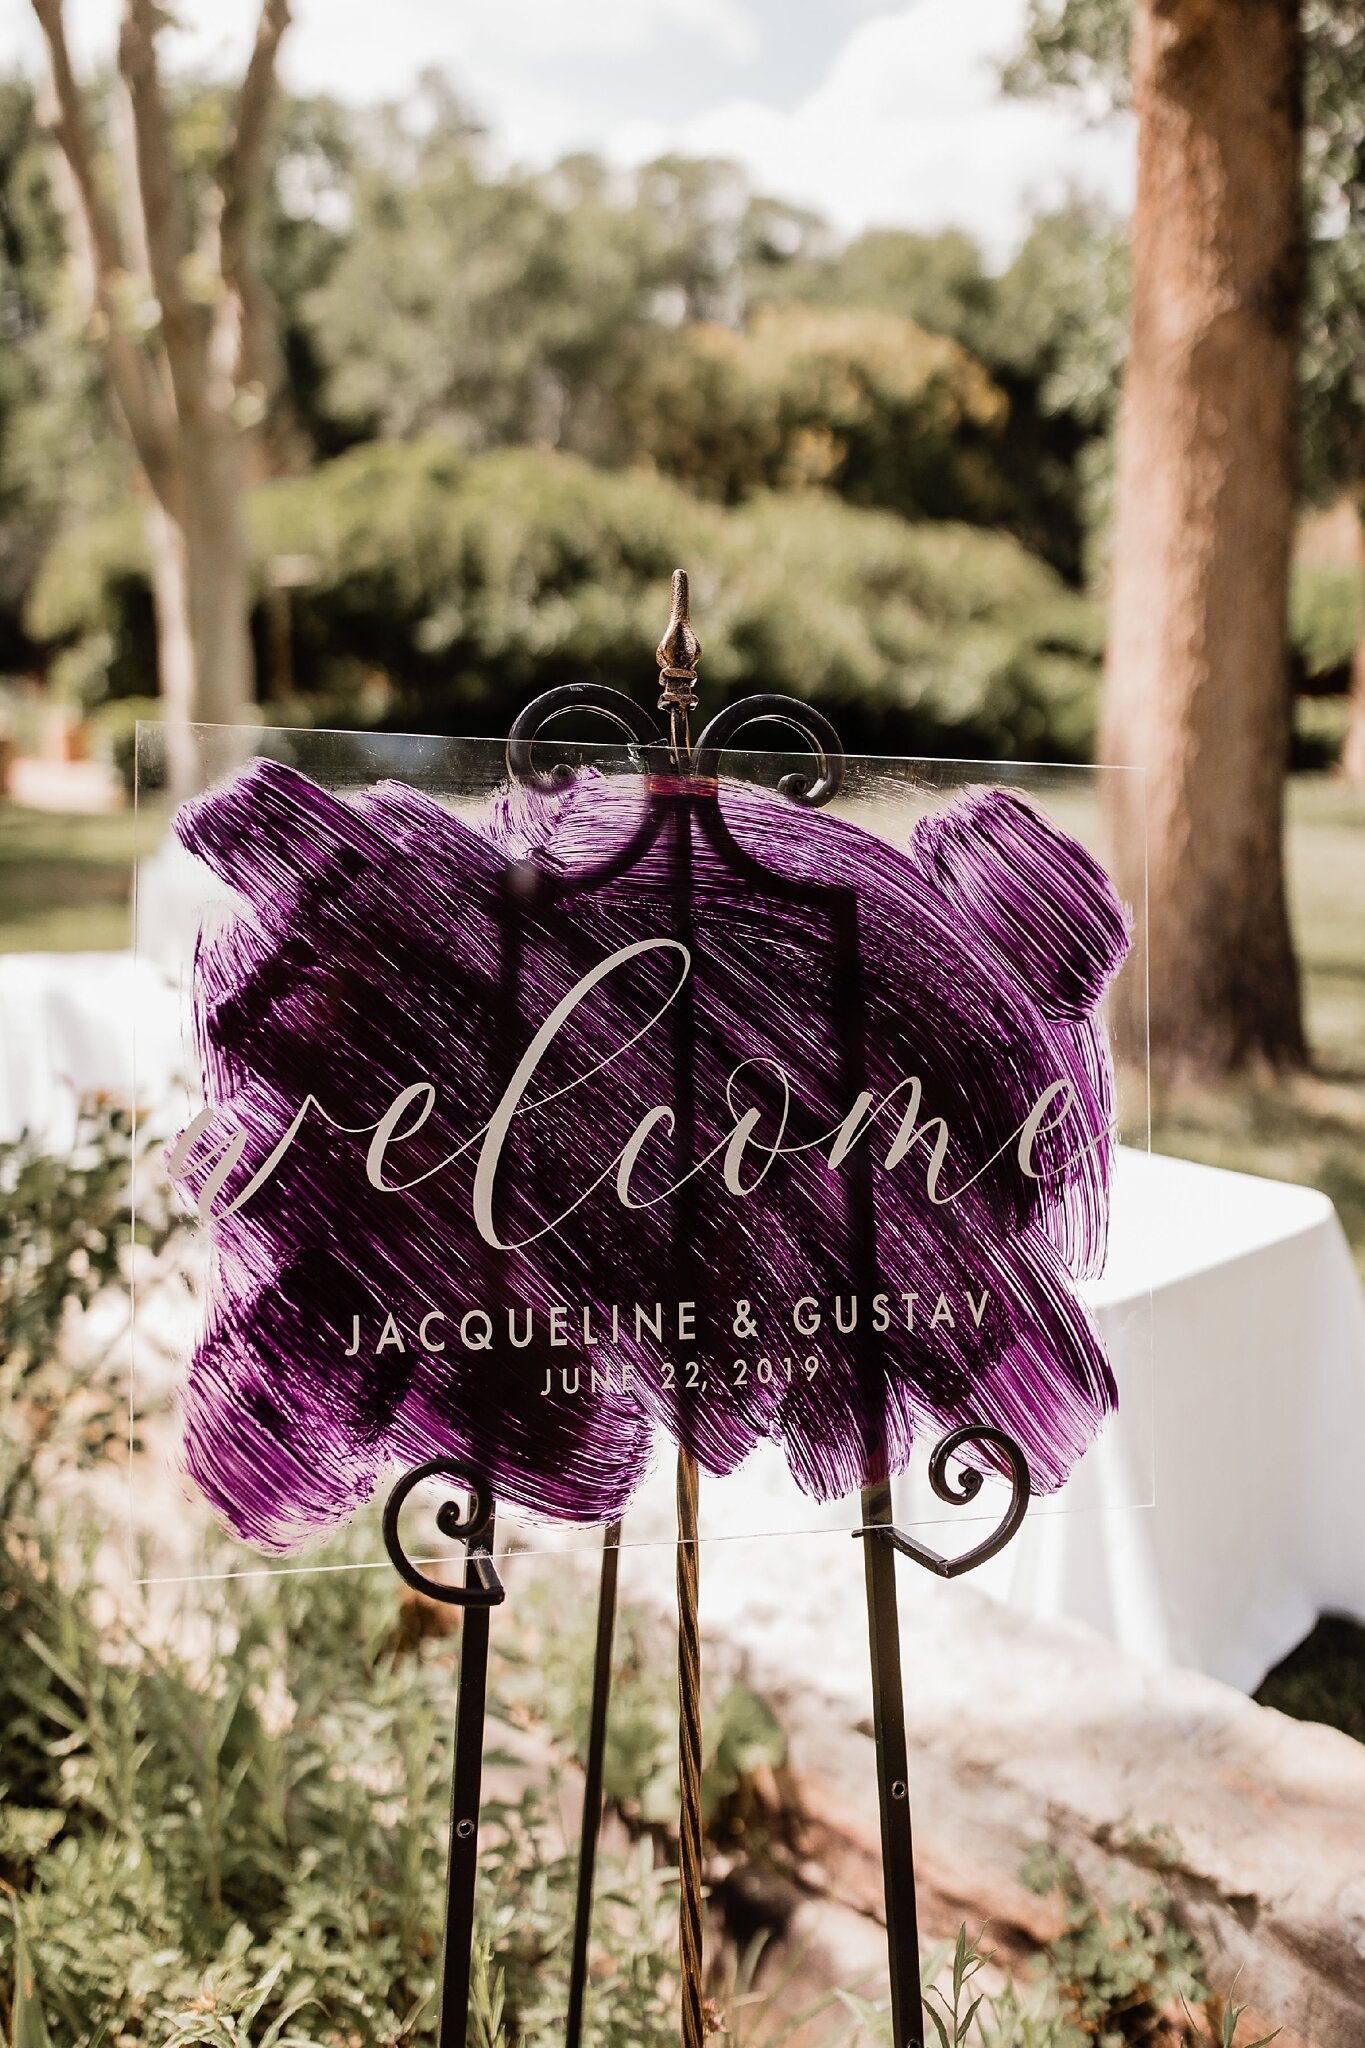 Alicia+lucia+photography+-+albuquerque+wedding+photographer+-+santa+fe+wedding+photography+-+new+mexico+wedding+photographer+-+new+mexico+wedding+-+wedding+signage+-+wedding+signs+-+glass+wedding+signs_0015.jpg